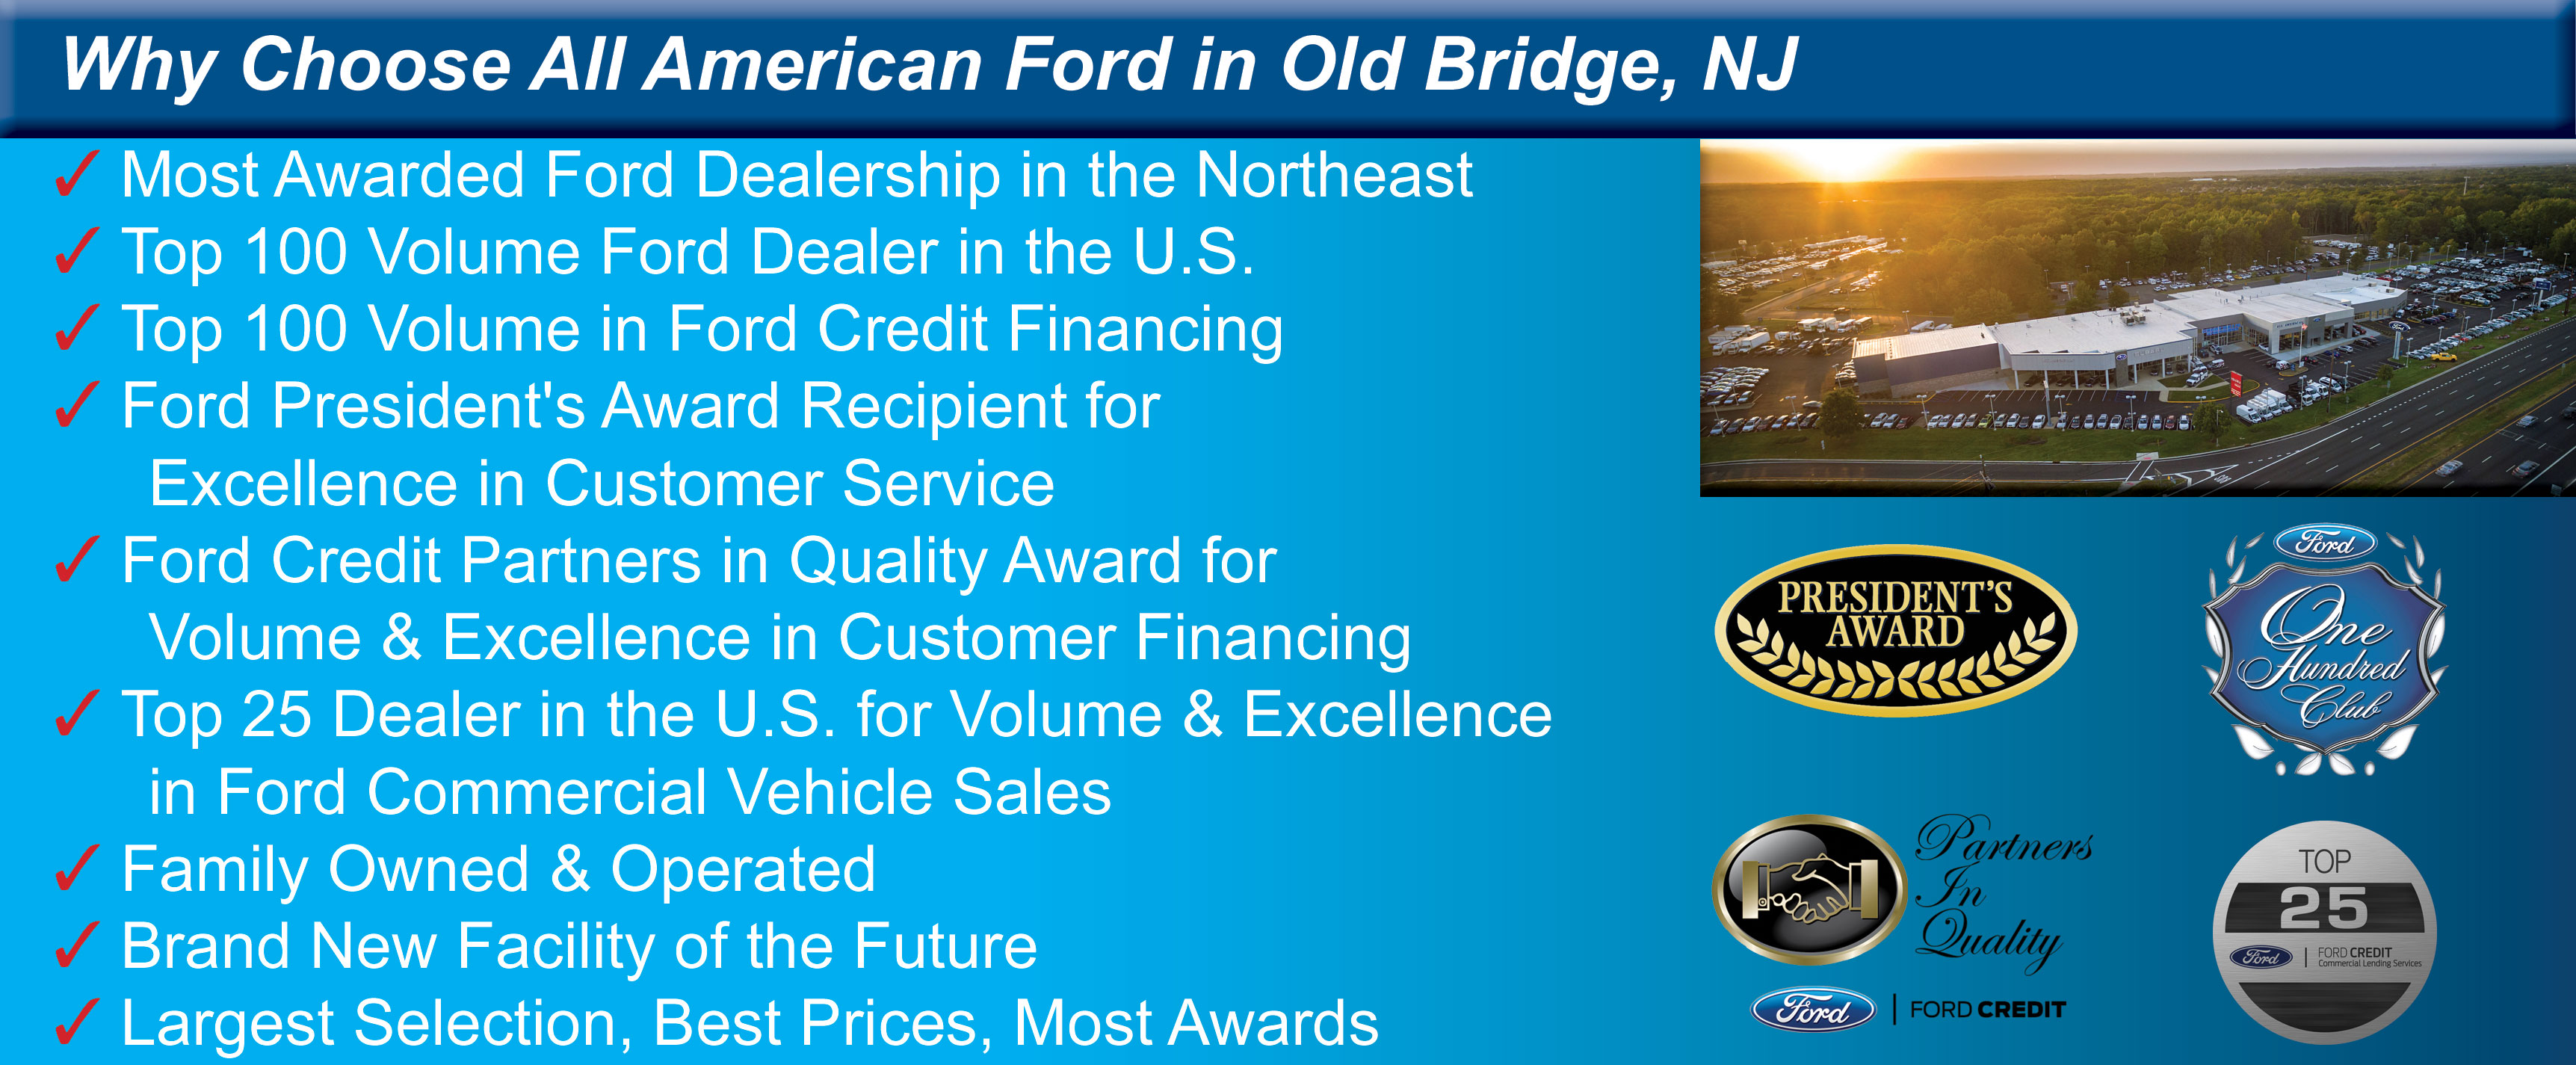 all american ford in old bridge your local central nj ford dealership. Cars Review. Best American Auto & Cars Review